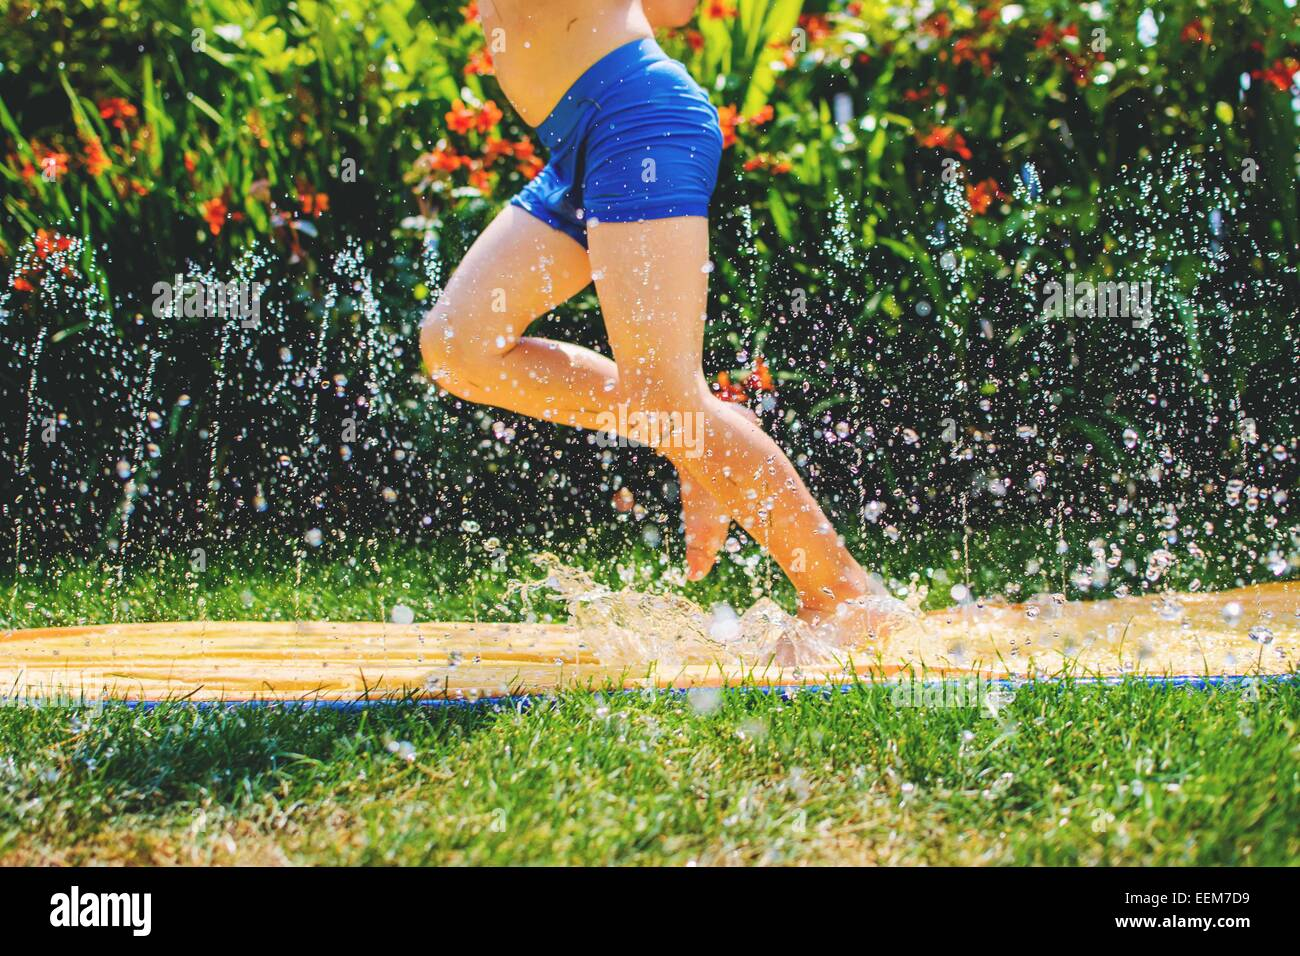 Young boy's legs (4-5) running through water play - Stock Image